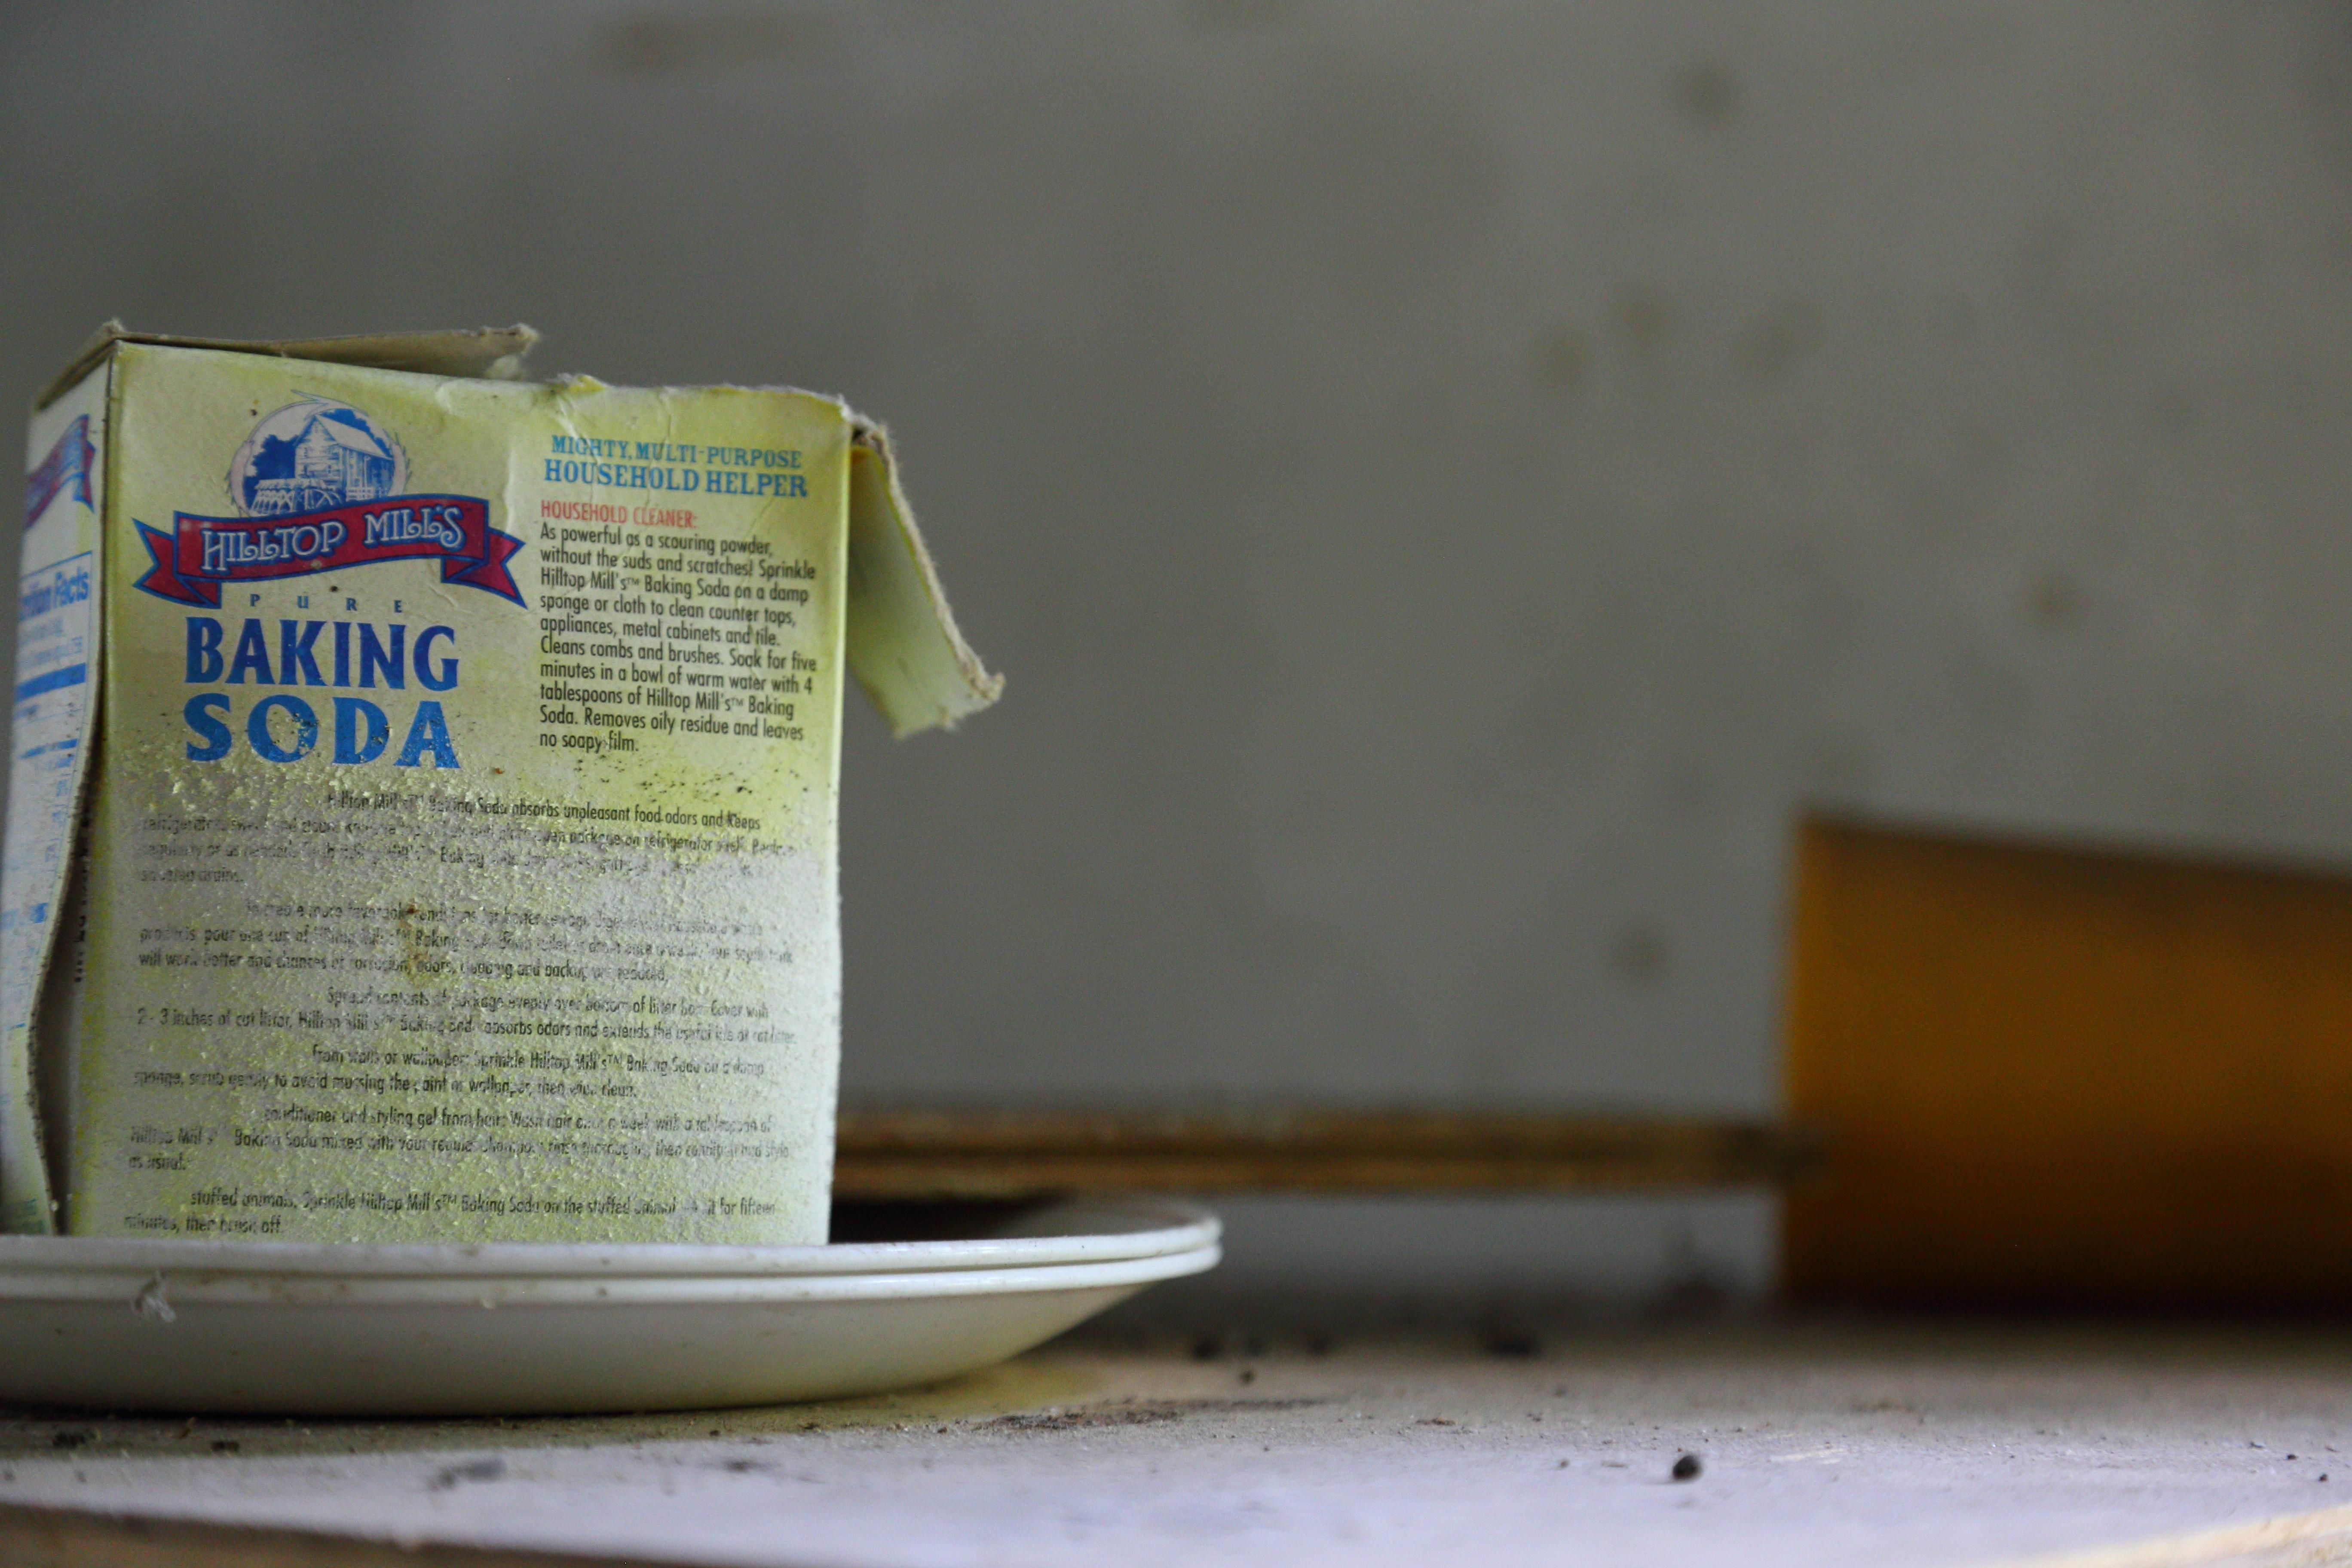 Oc old baking soda package in abandoned house in southern tn